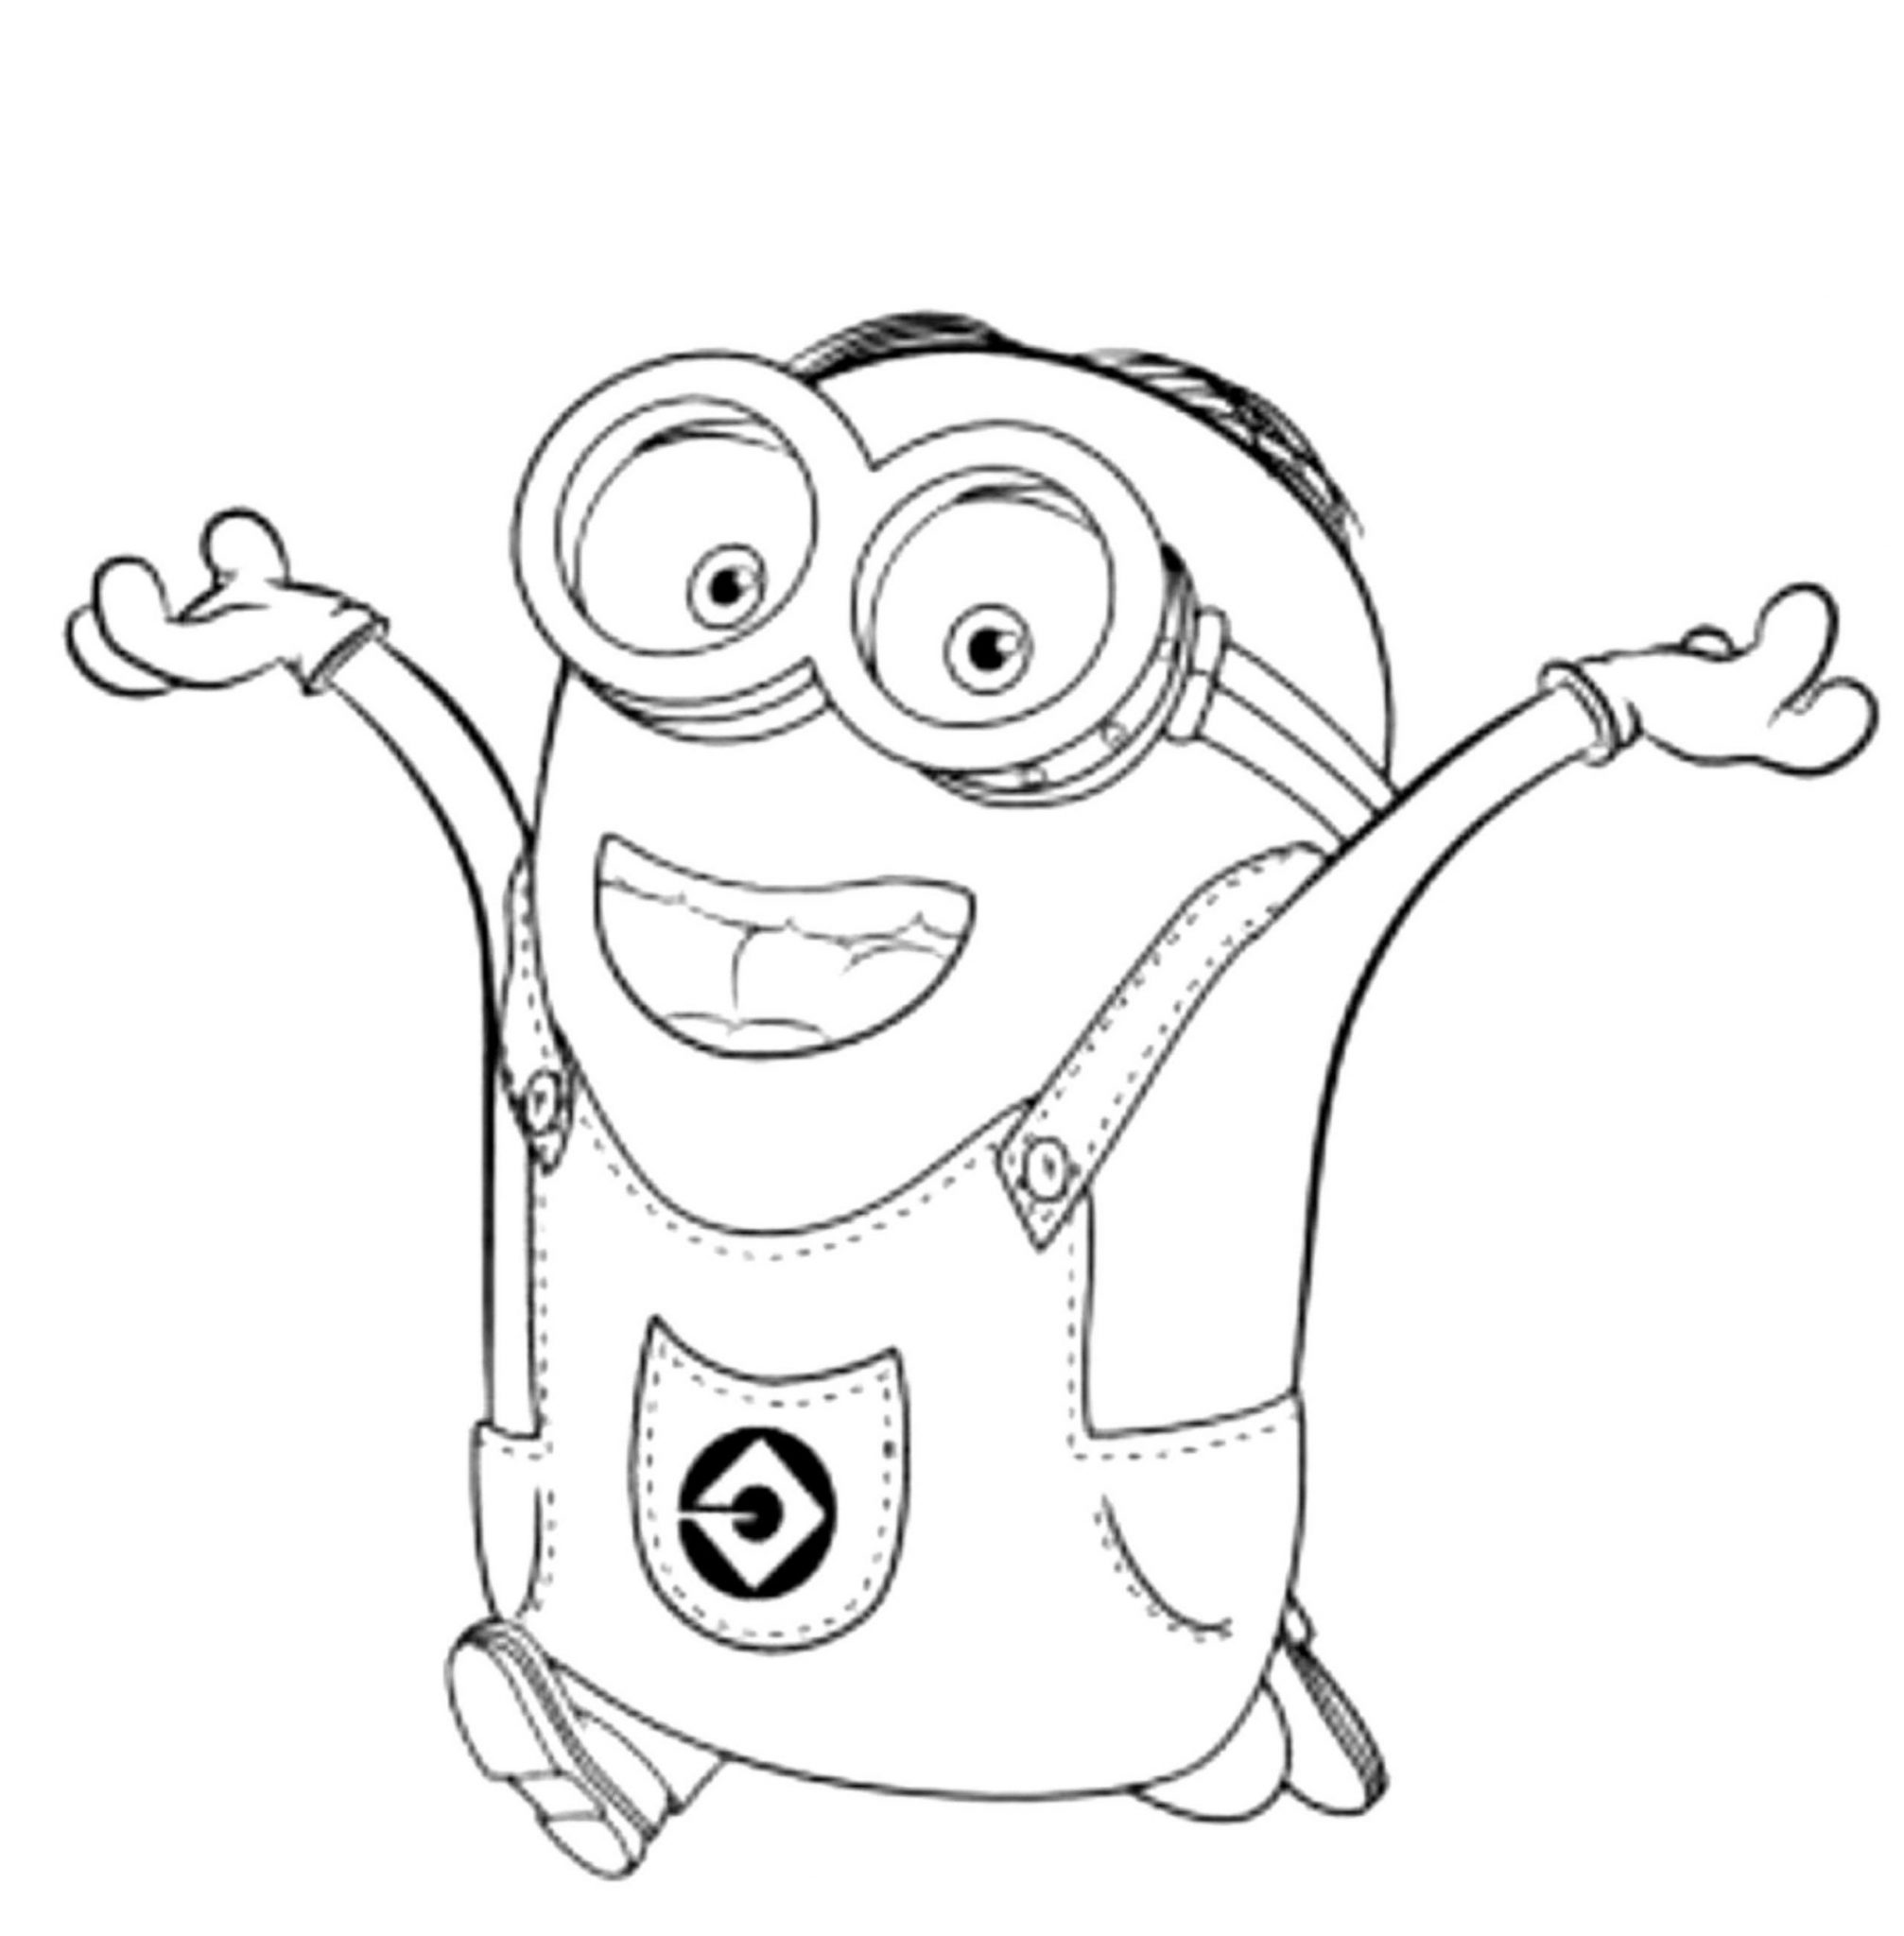 Print & Download - Minion Coloring Pages for Kids to Have Fun -